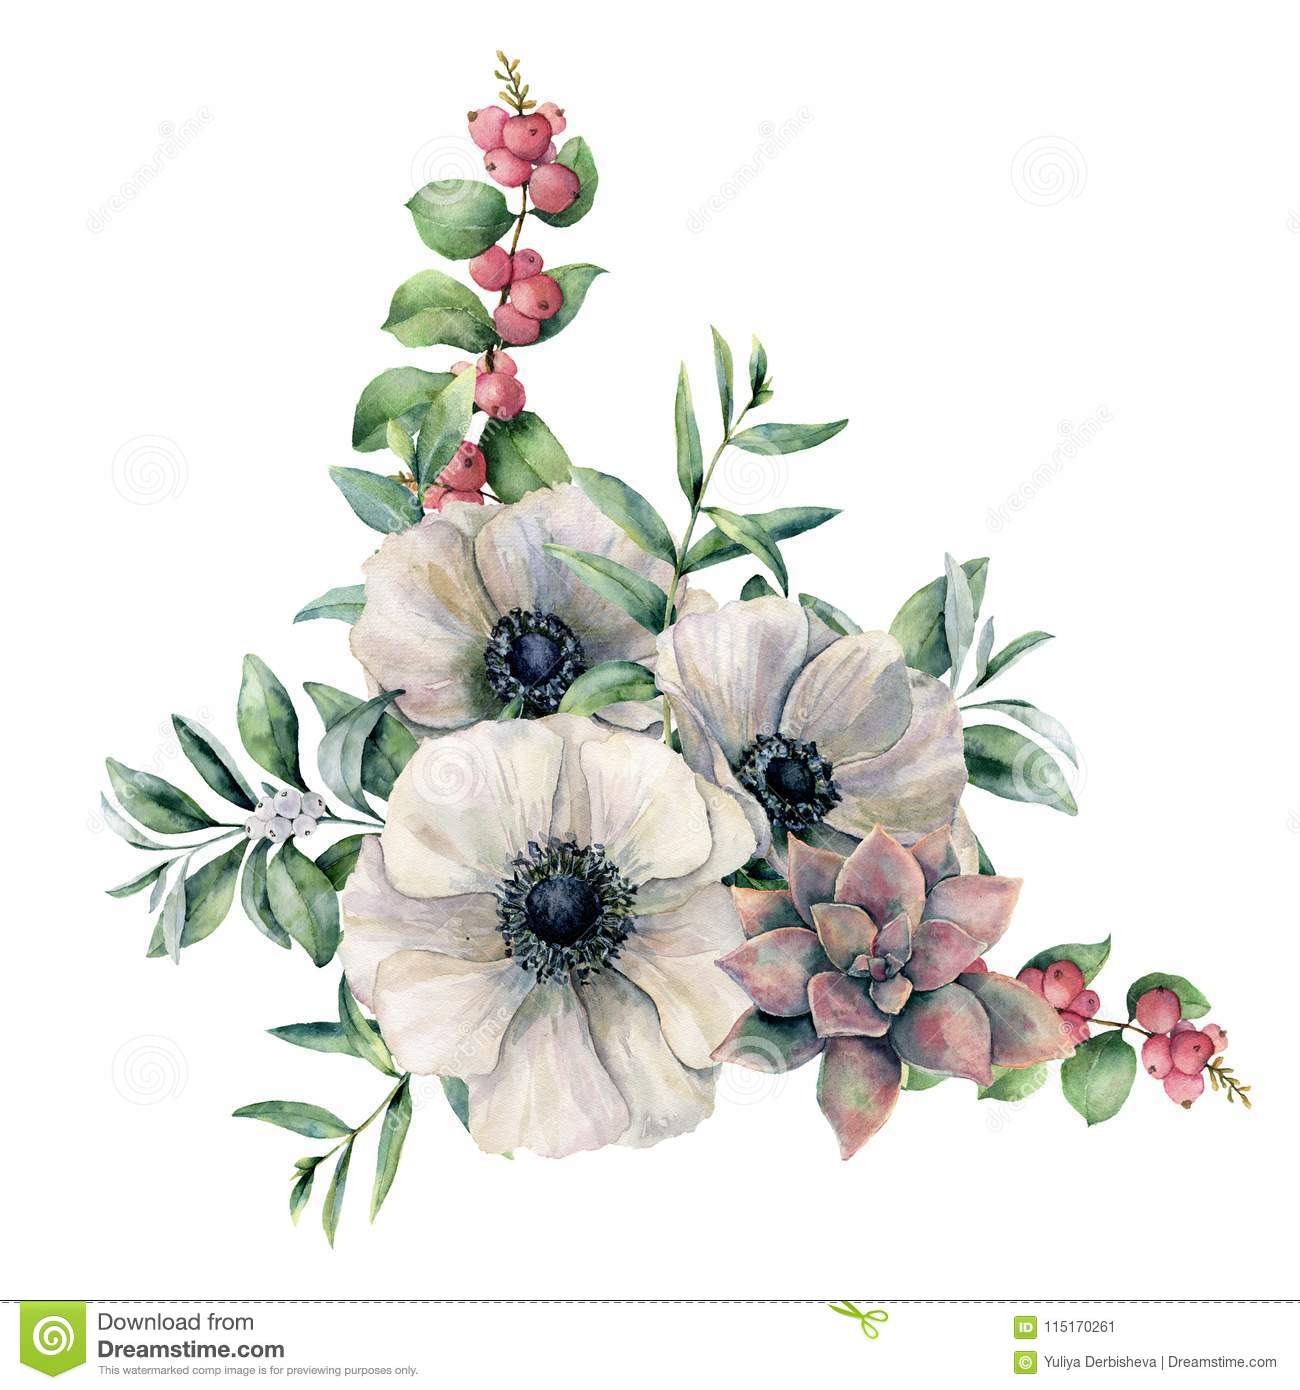 Watercolor White Anemone And Pink Succulent Bouquet Hand Painted Colorful Flower Eucalyptus Leaves And Berries Stock Illustration Illustration Of Flora Decorative 115170261